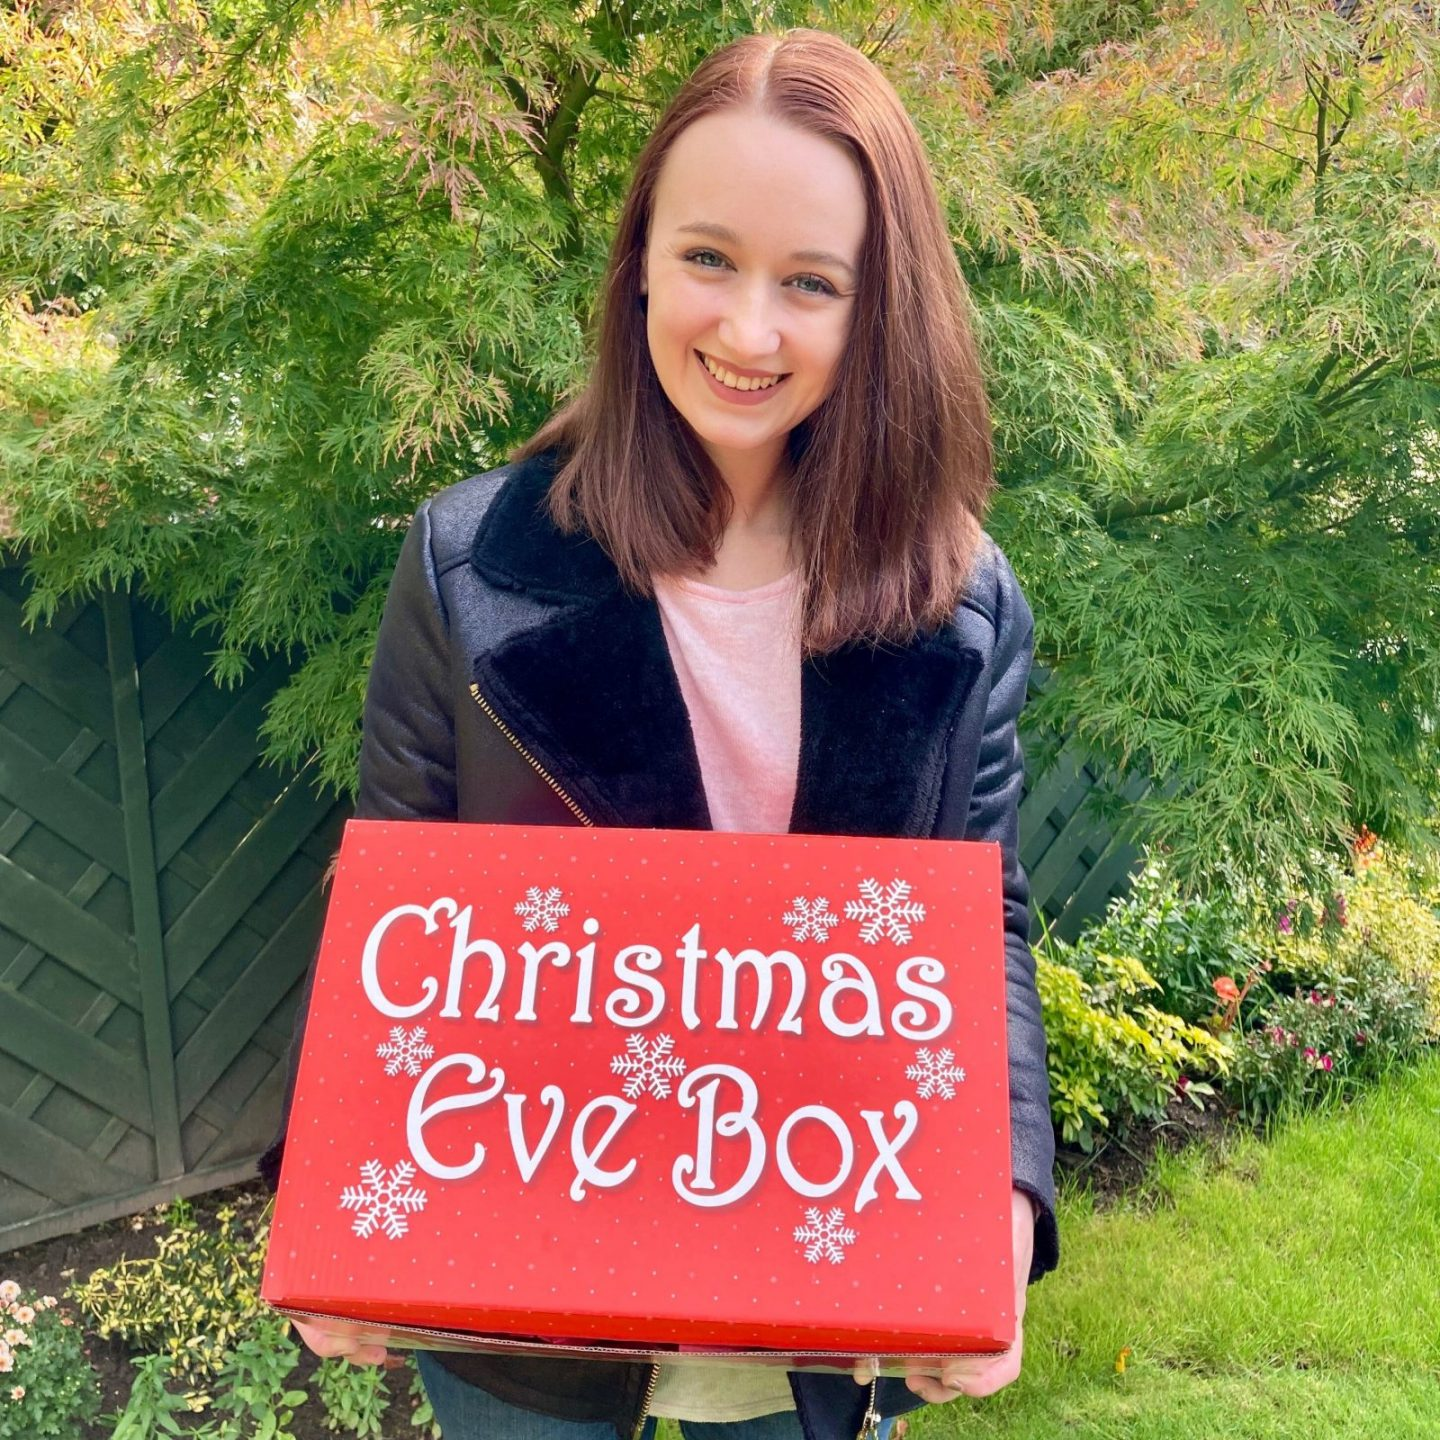 pippa stood outdoors holding up red spoonie christmas eve box and smiling